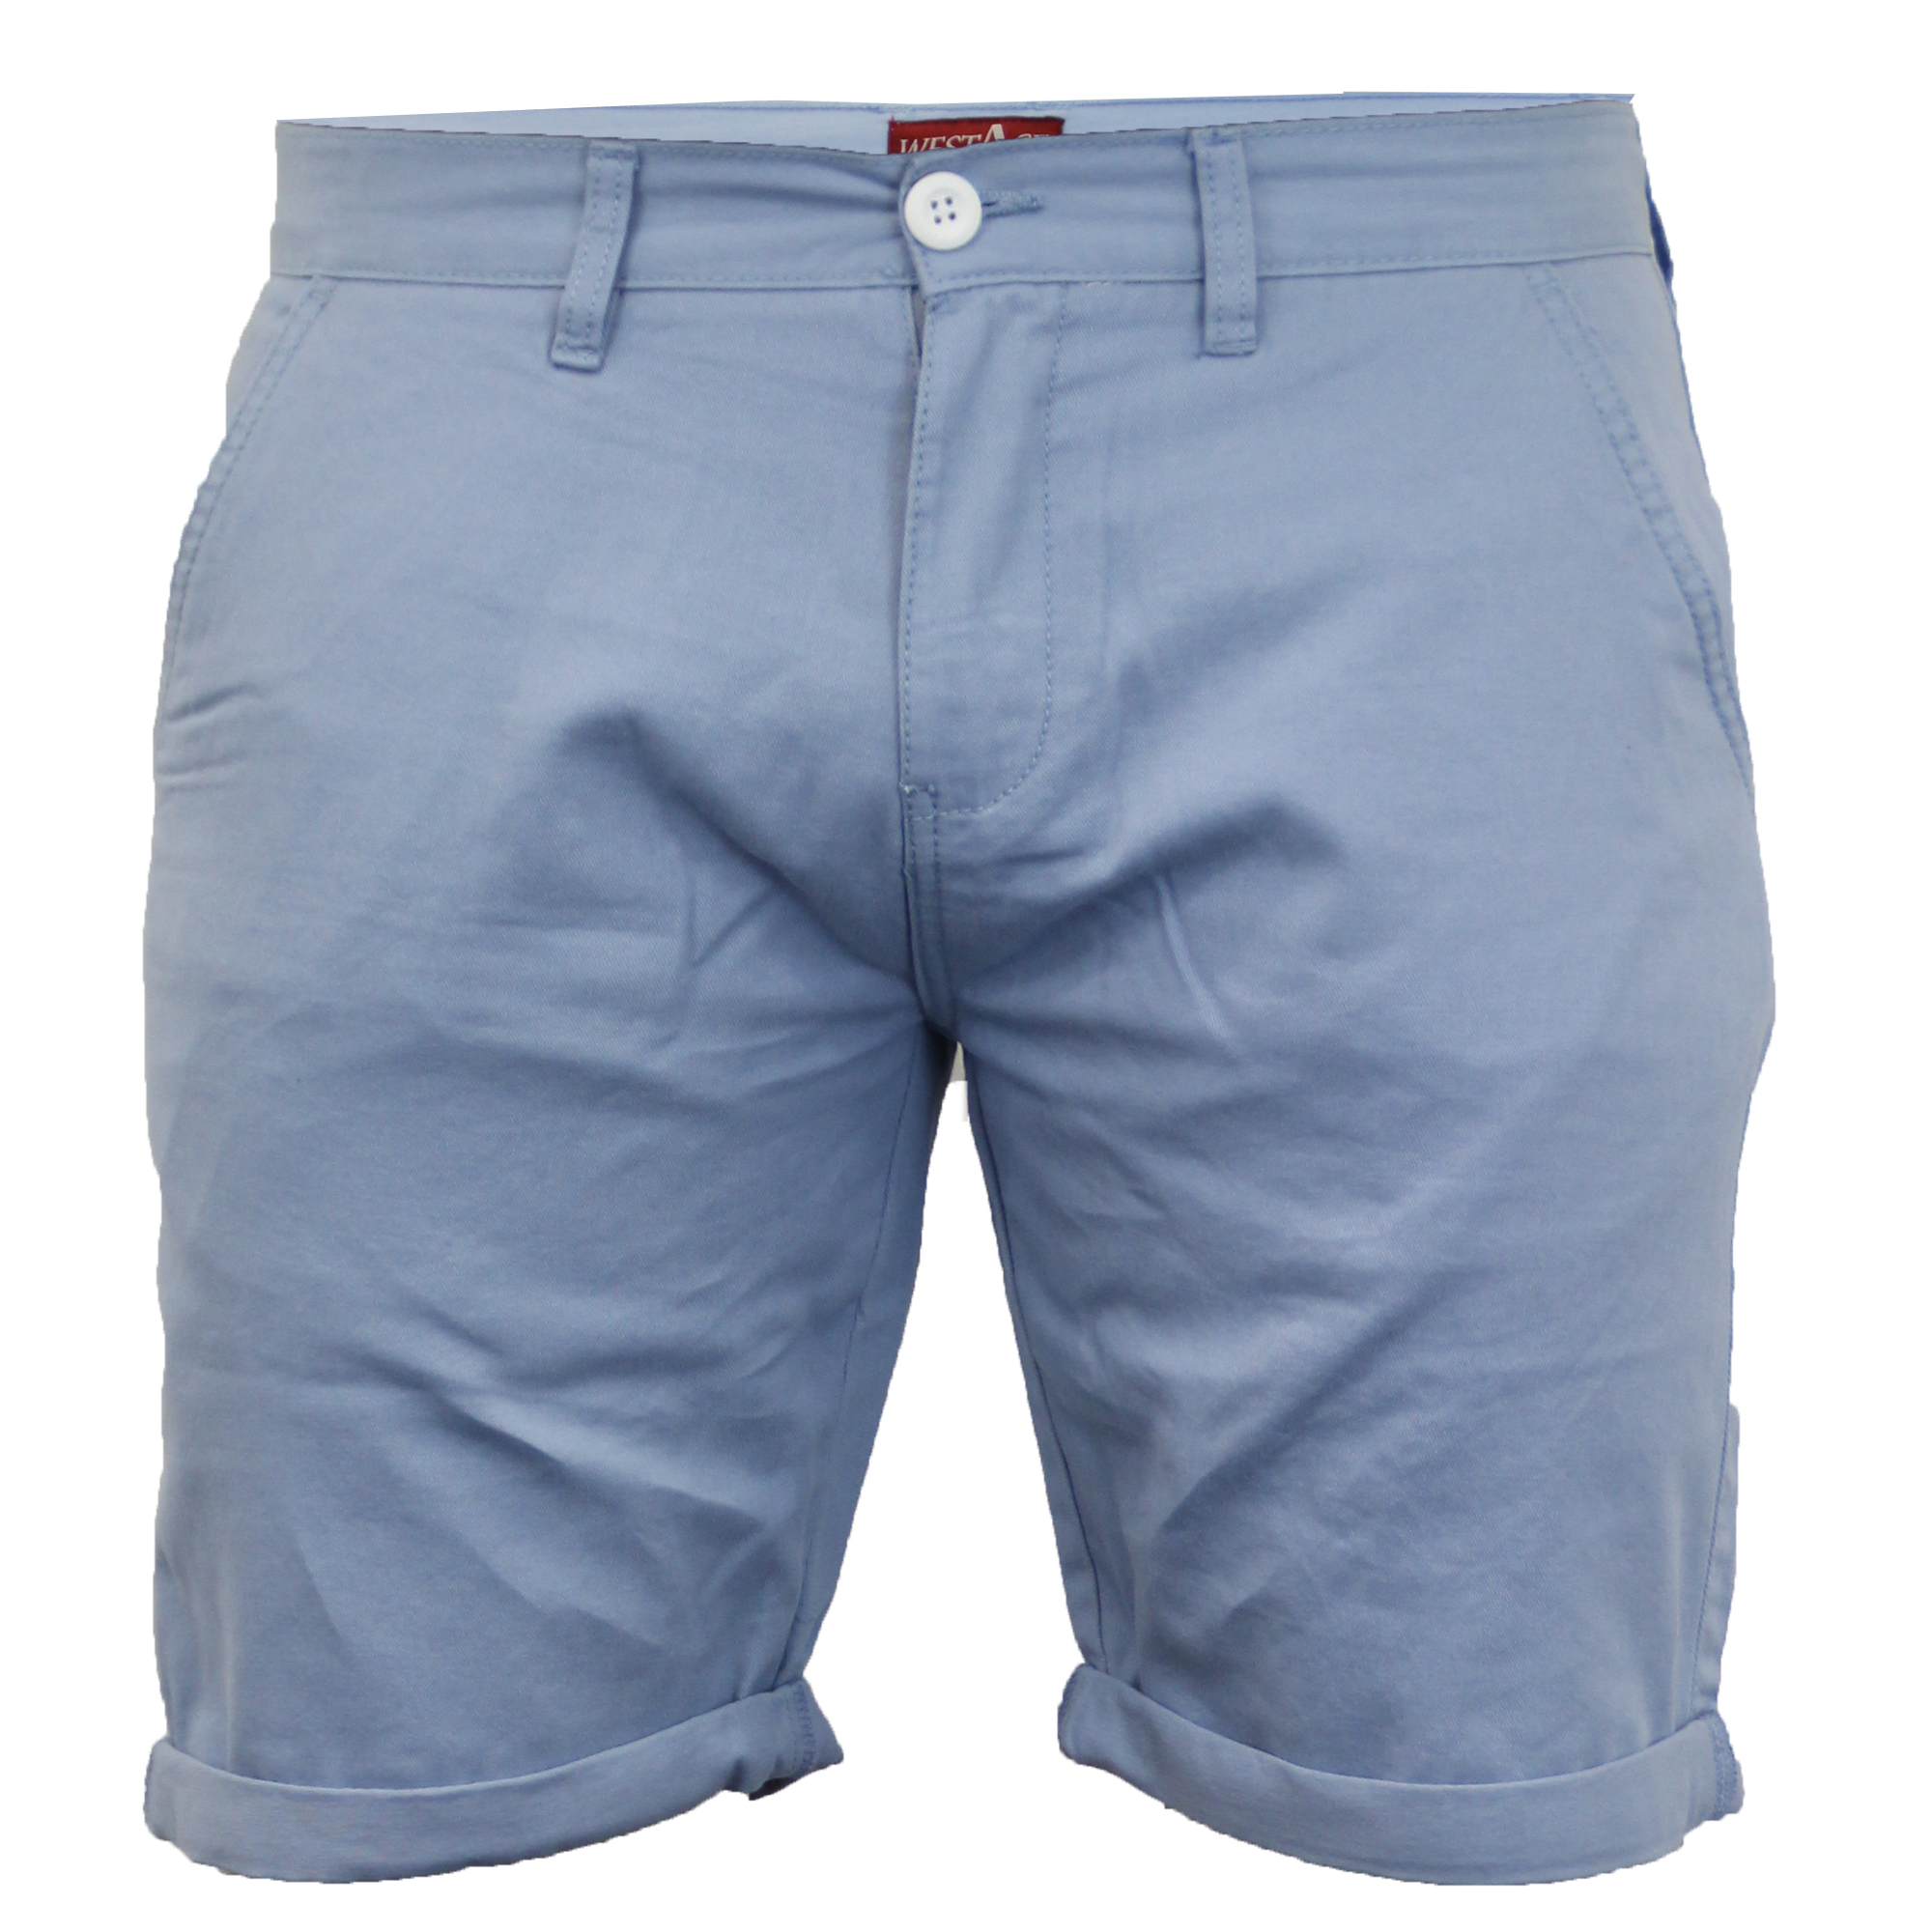 Mens-Chino-Shorts-Threadbare-Pants-Westace-Stallion-Knee-Length-Roll-Up-Summer thumbnail 12